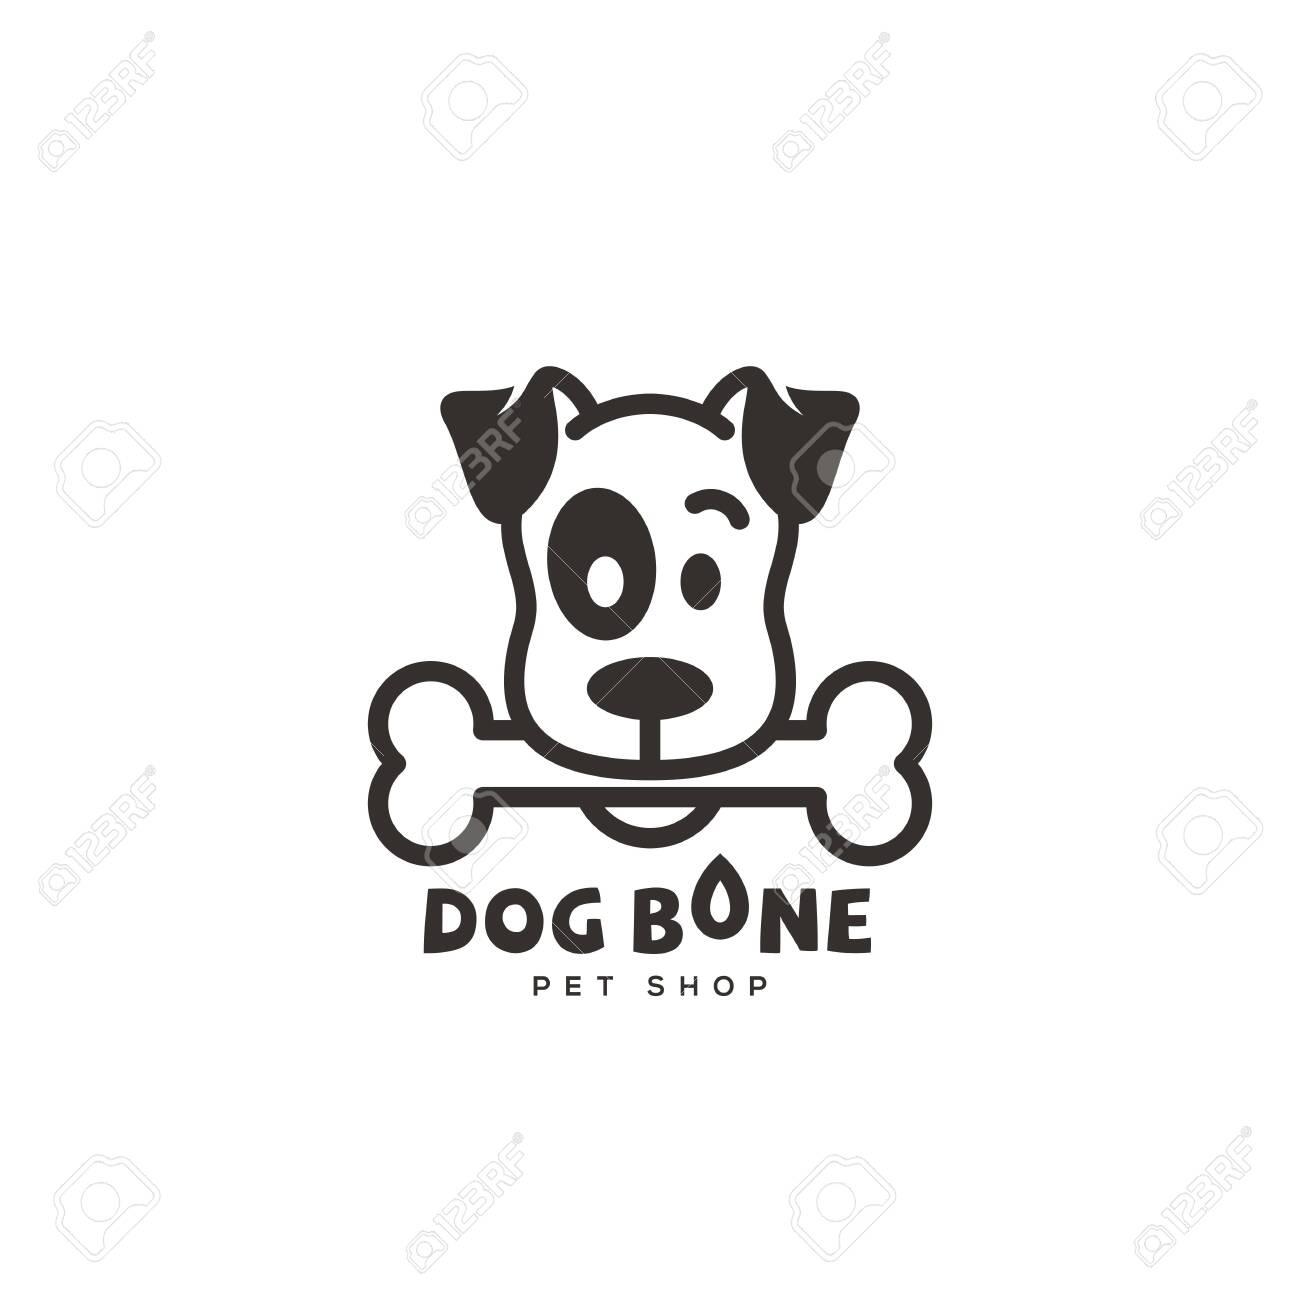 Dog Bone Logo Design Template In Linear Style Vector Illustration Royalty Free Cliparts Vectors And Stock Illustration Image 125472451